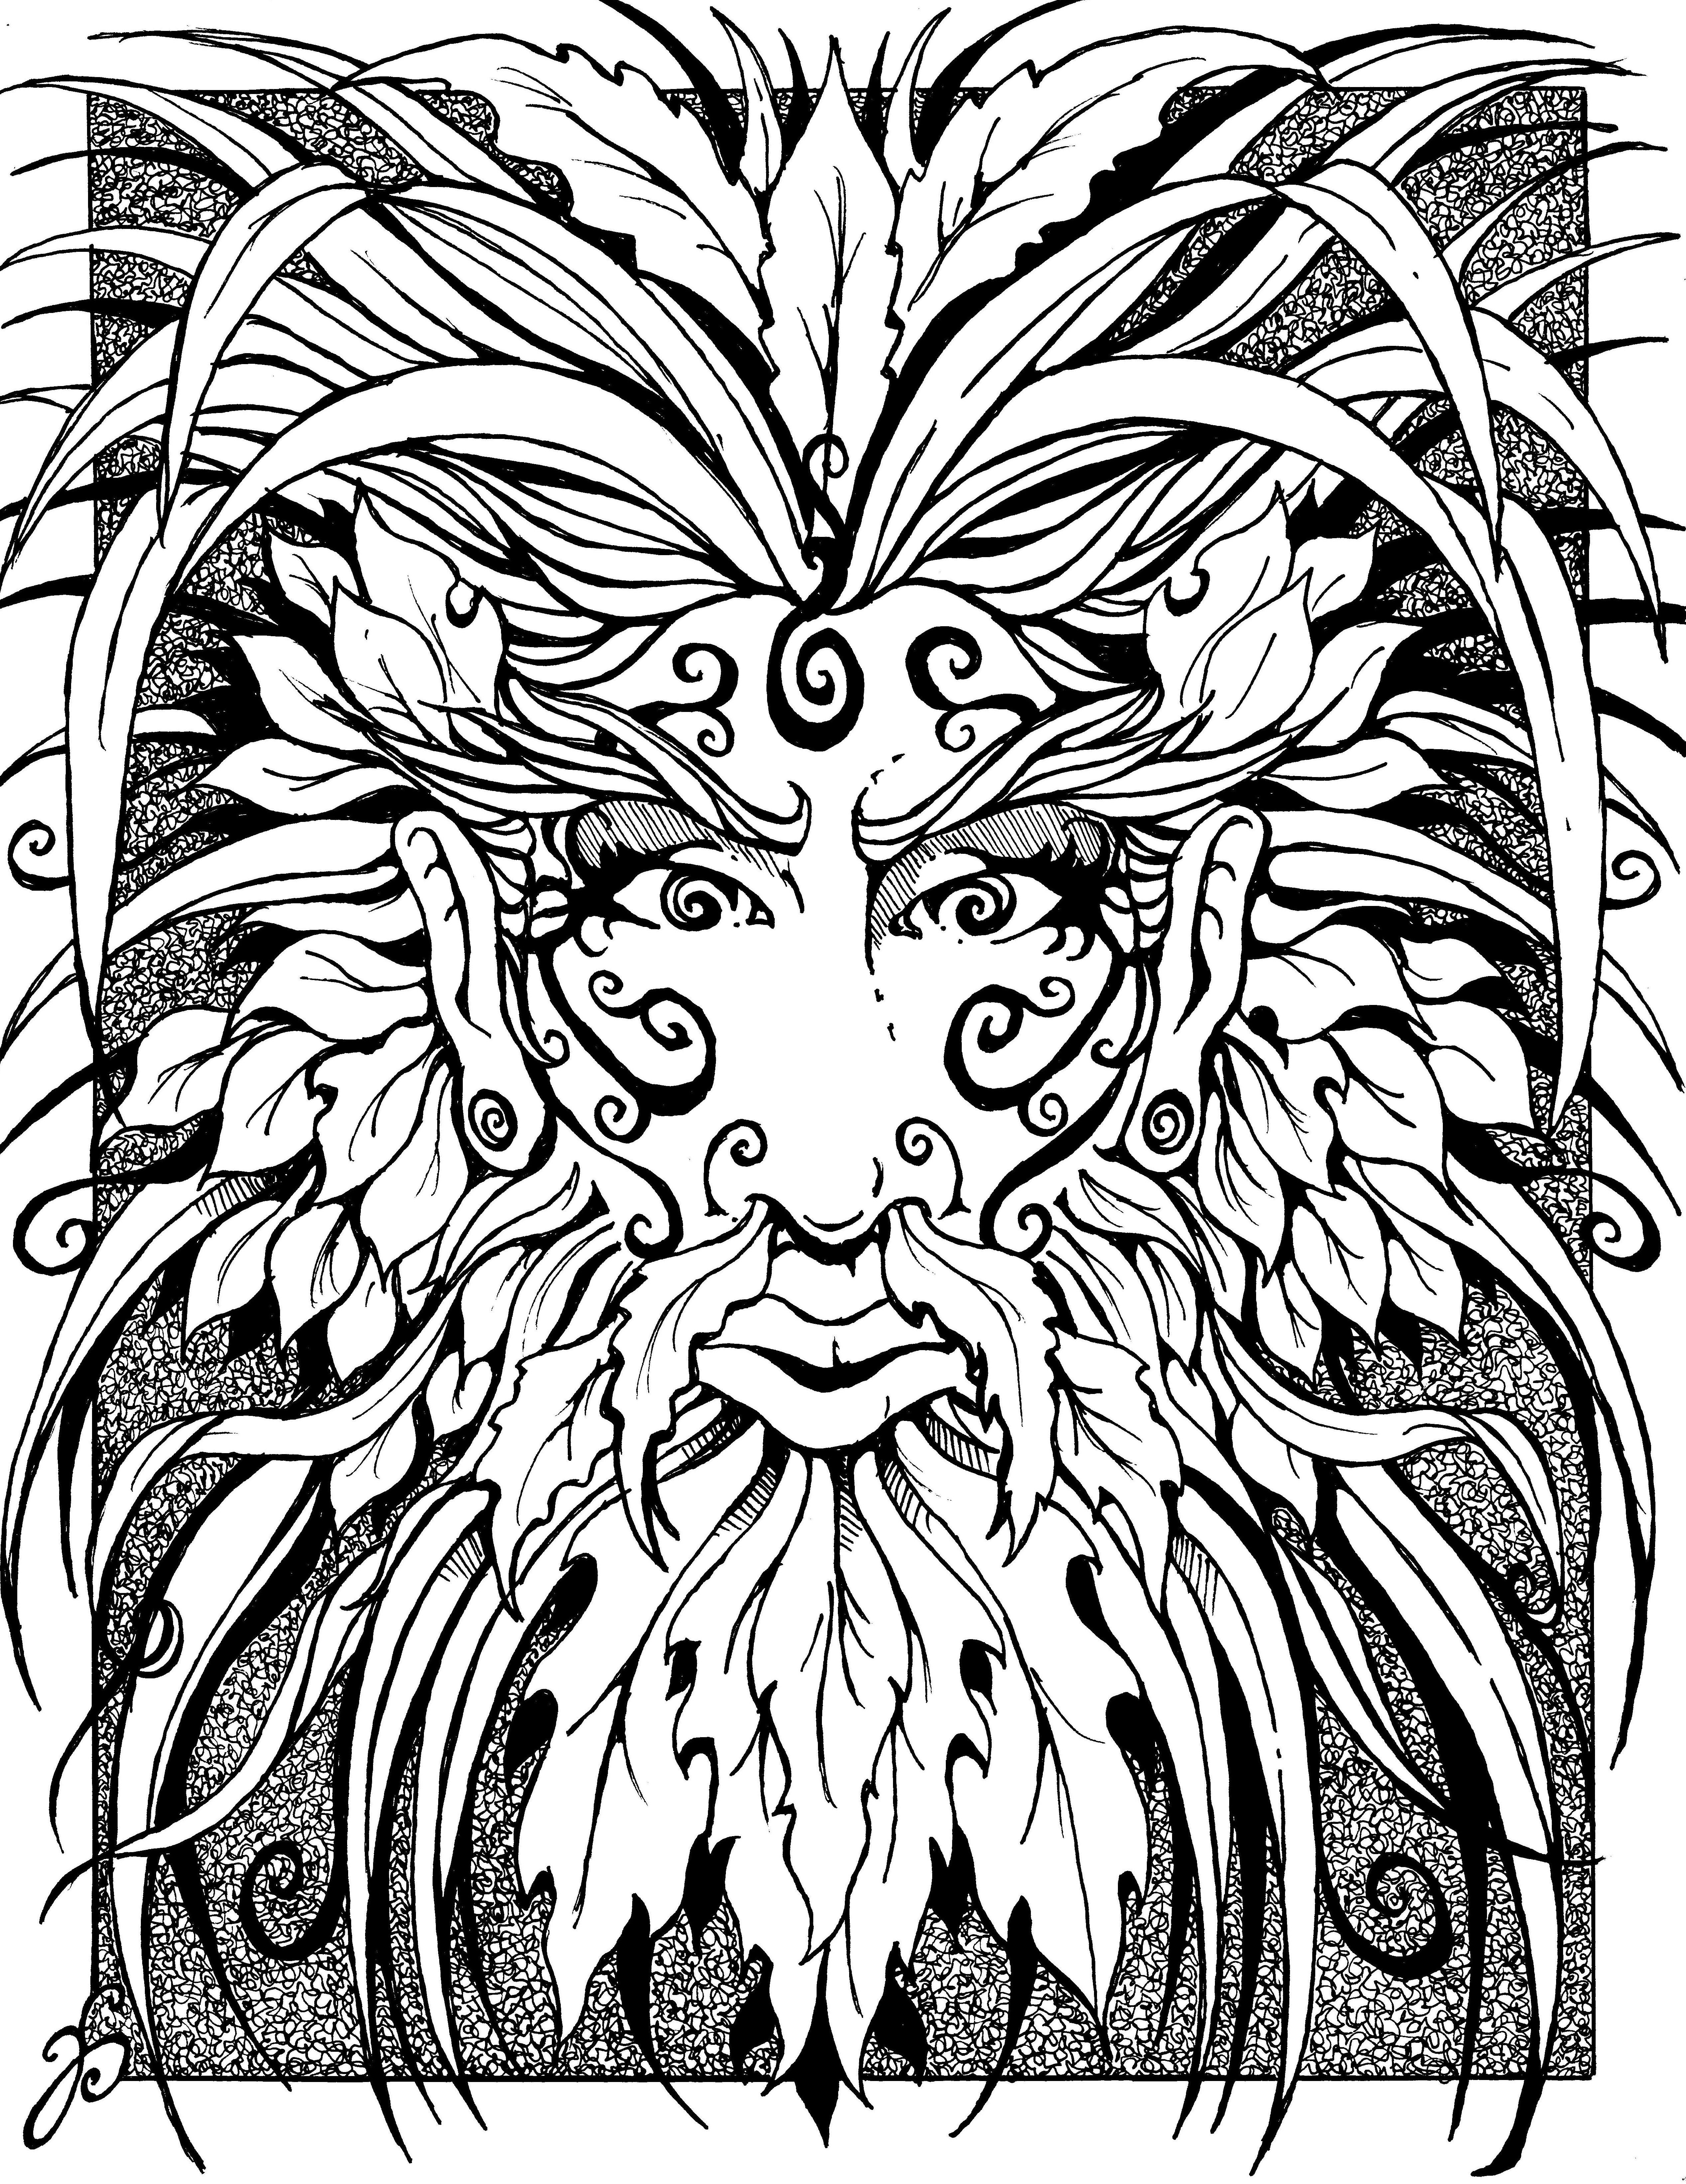 southern green man 8 1 2 x 11 pen and ink on card stock the X-Men Legends 2 southern green man 8 1 2 x 11 pen and ink on card stock